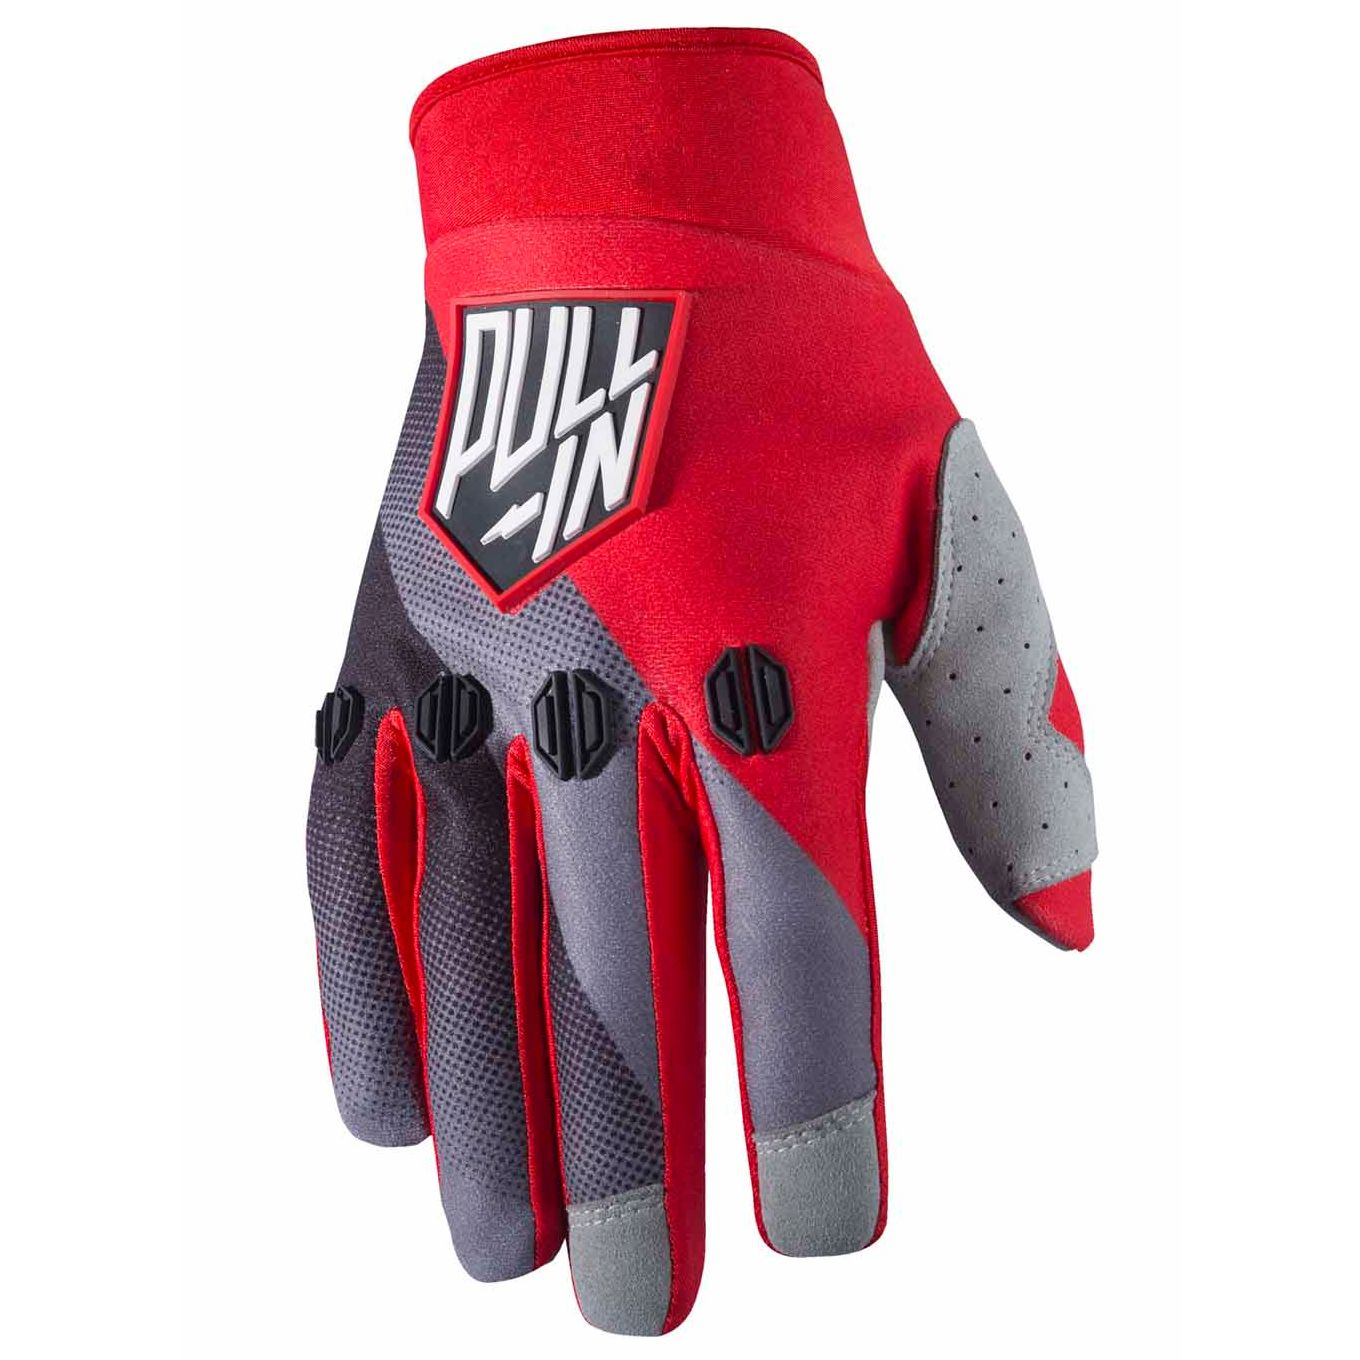 Gants Cross Pull-in Race - Noir / Gris / Rouge -